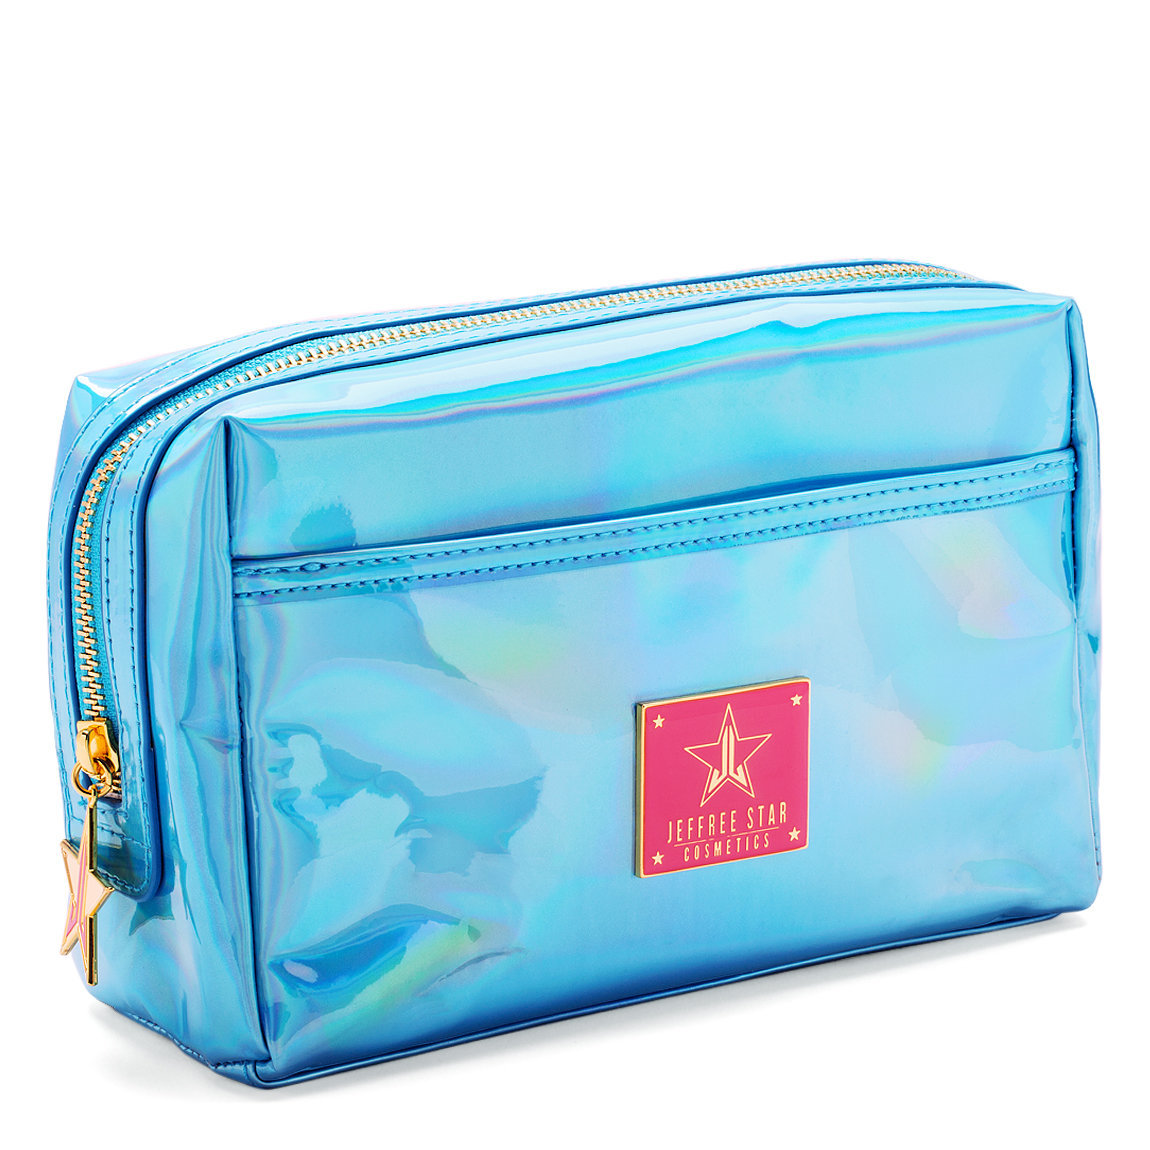 Jeffree Star Cosmetics Makeup Bag Holographic Blue product smear.